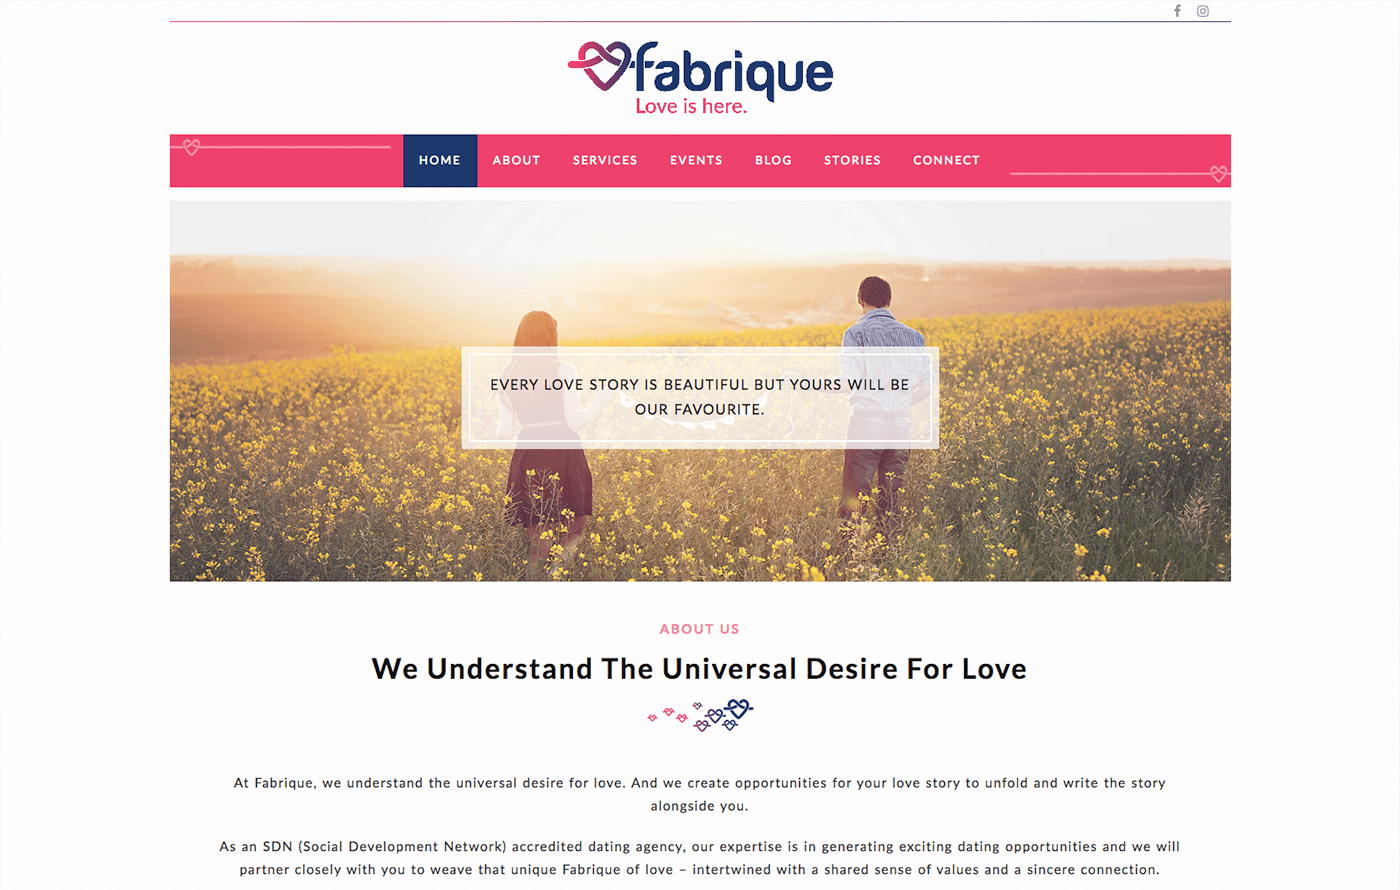 New-TN-Portfolio-April2017-FabriqueLove-1400px-001 Projects Showcase